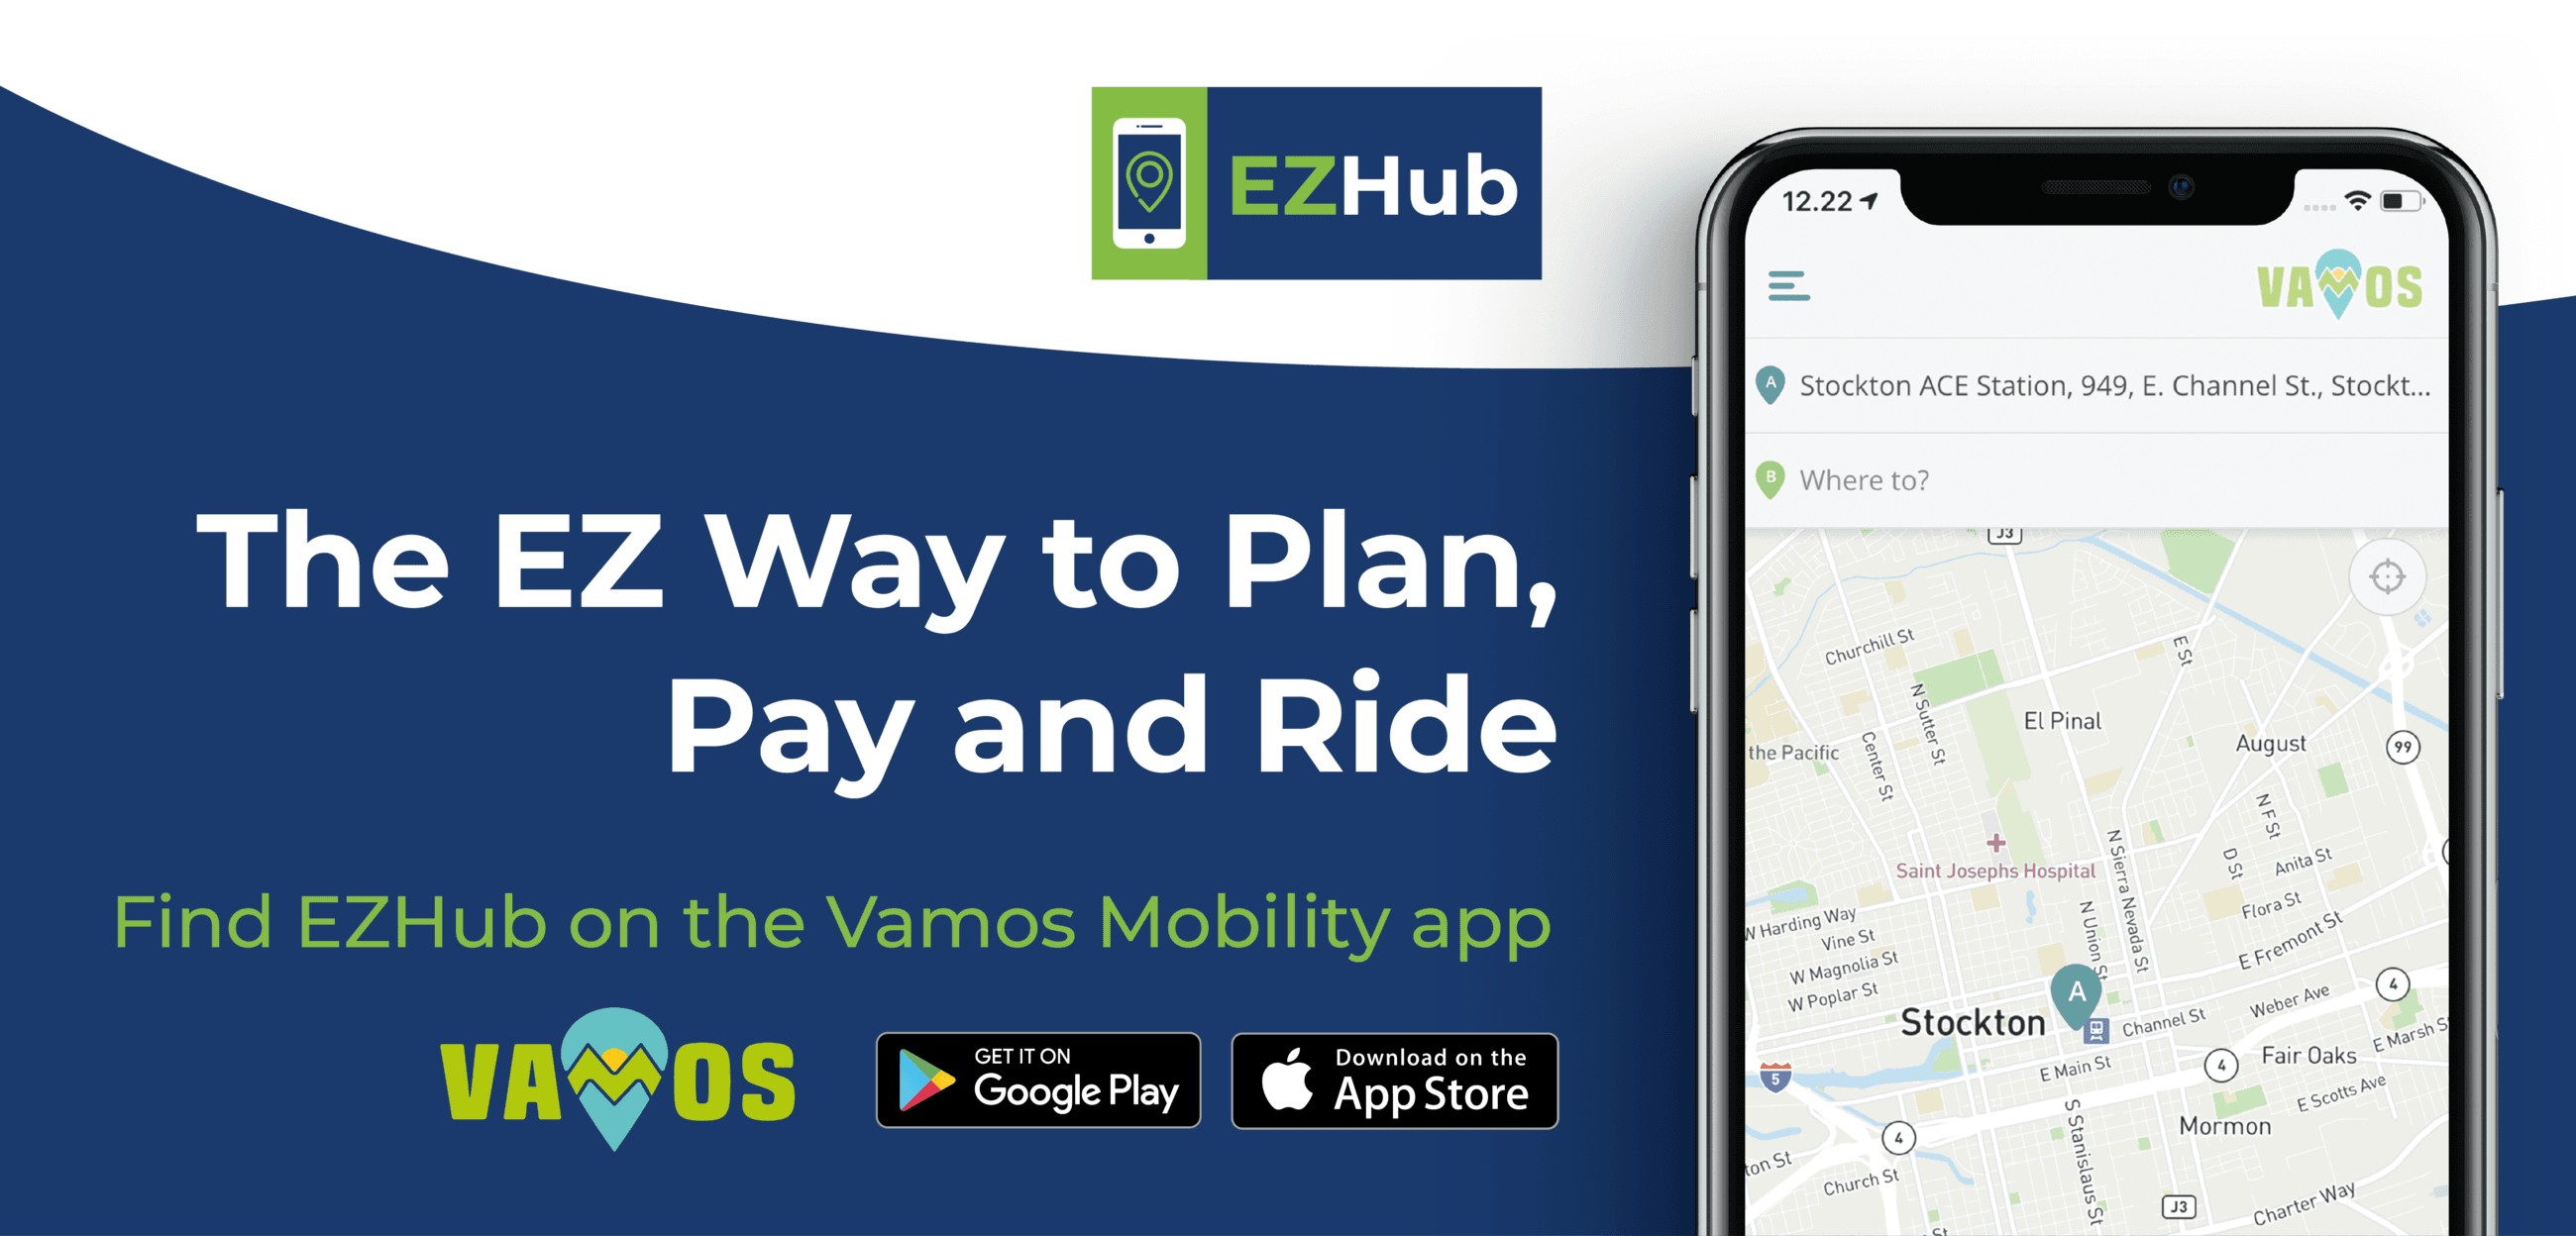 Advertisement for SJCOG's transit mobile ticketing app: EZHub via Vamos Mobility App.